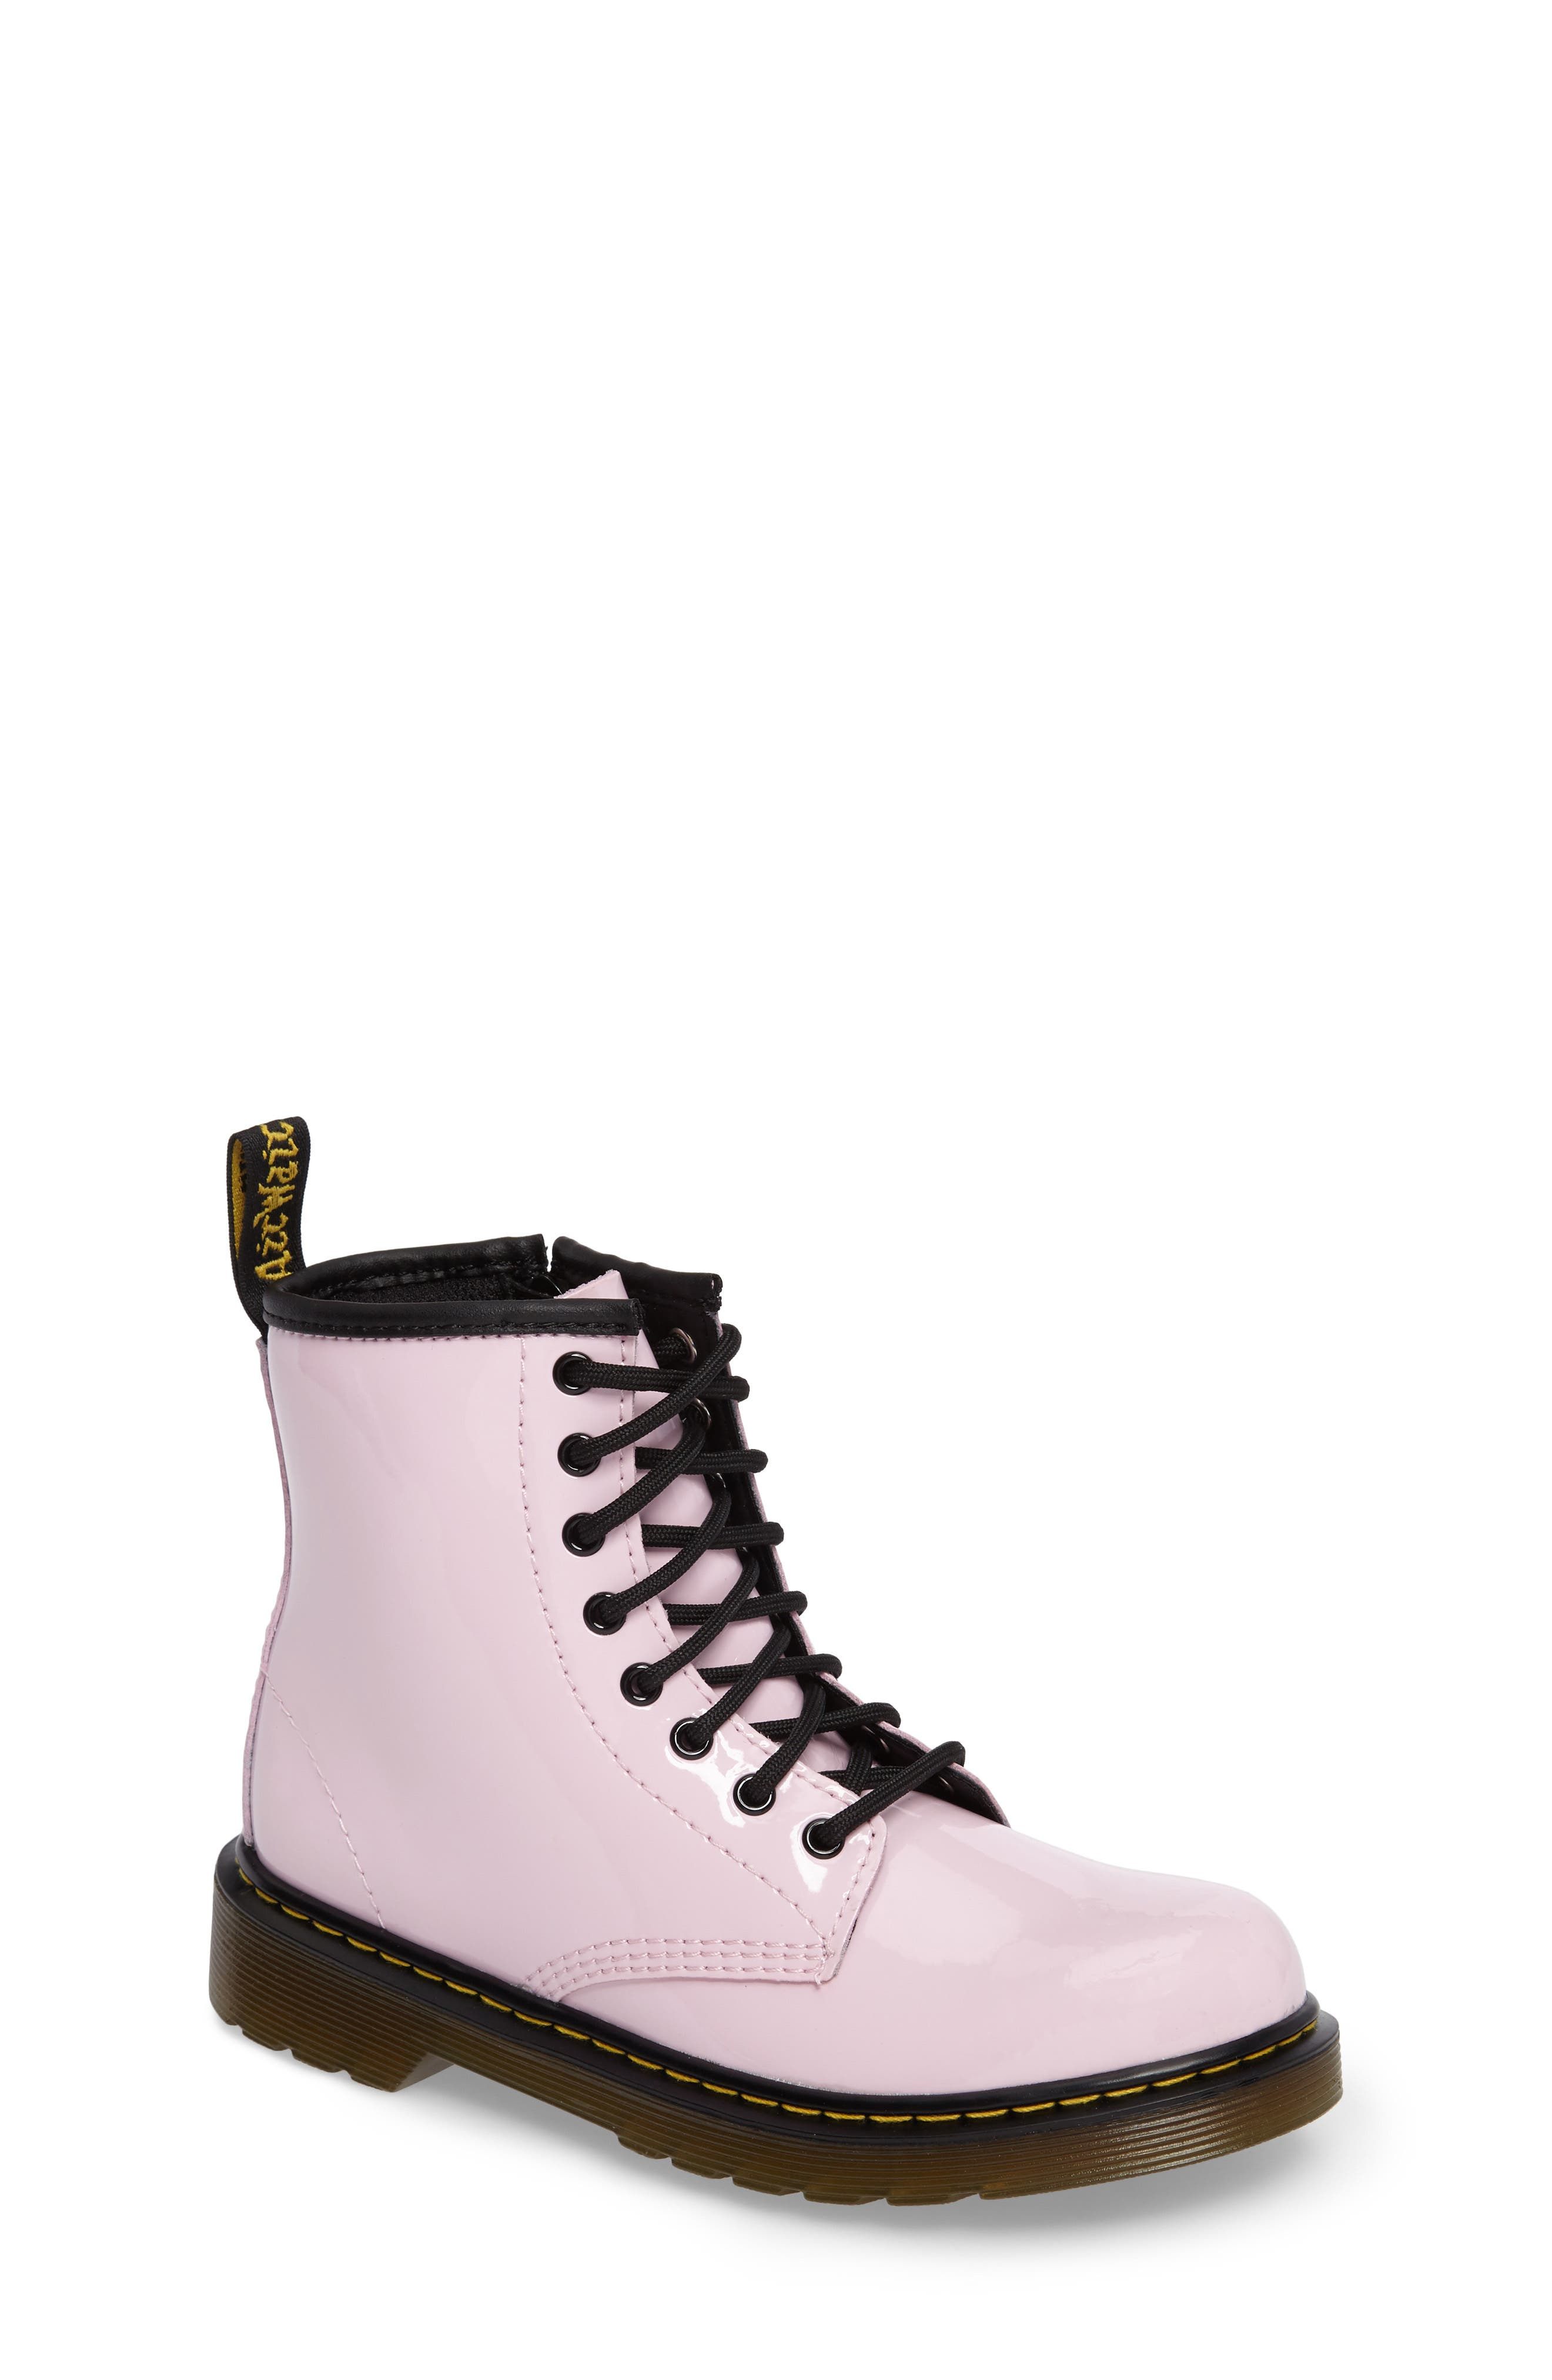 Dr. Martens Boot (Walker, Toddler, Little Kid & Big Kid)